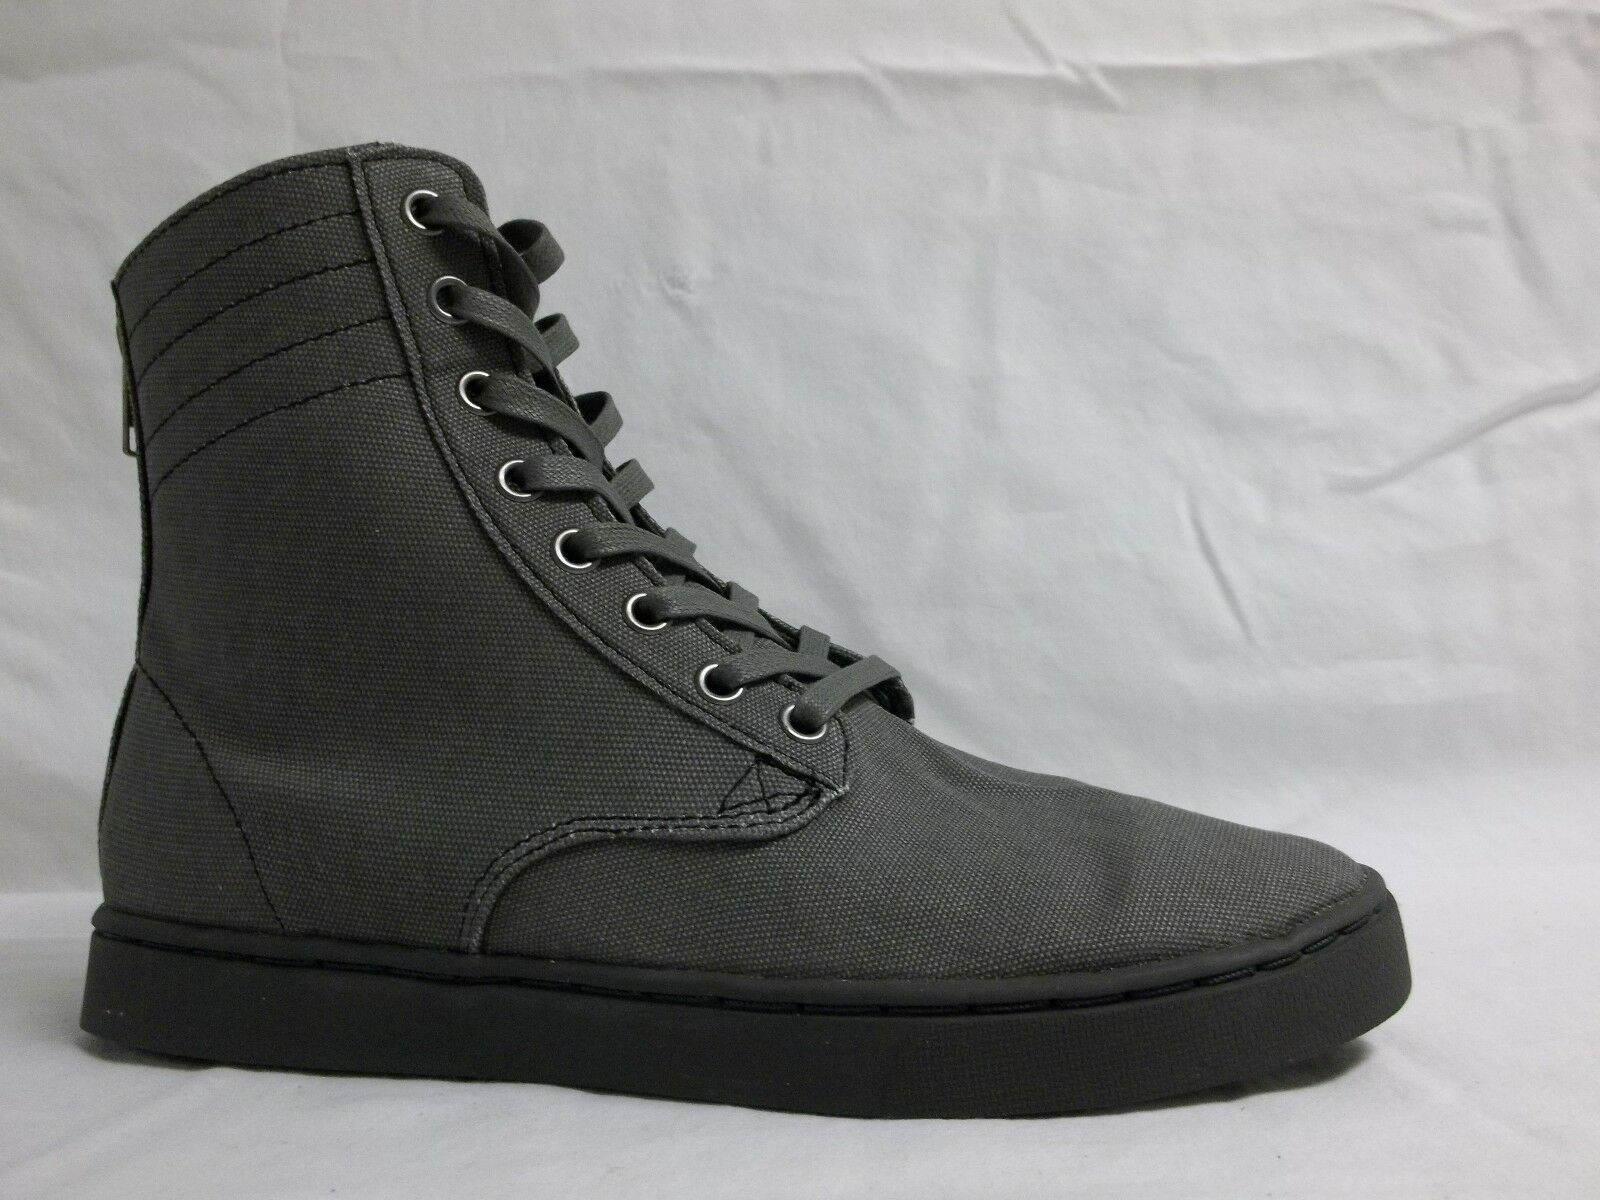 0daee5595a12 KR3W Size Size Size 7 M Franklin Grey Canvas High Top Sneakers New Mens  Shoes d40b4e